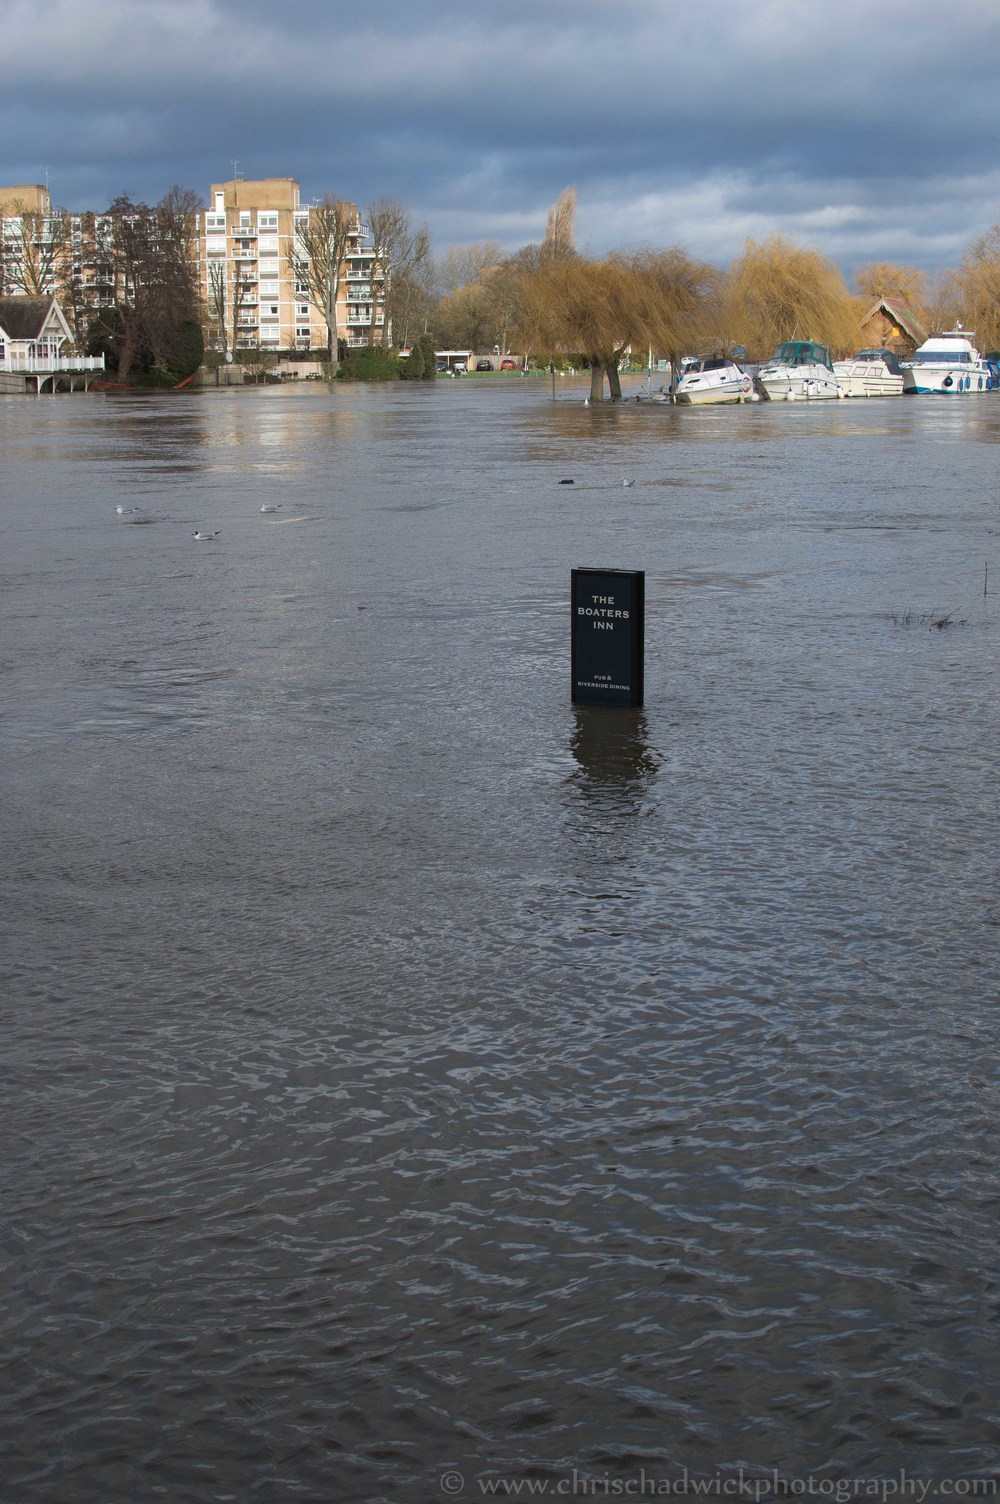 This image works quite well as it shows the extent of the flooding of the river Thames, with the water coming closer to the camera than in the landscape shot. It also mimics the shape of the sign.